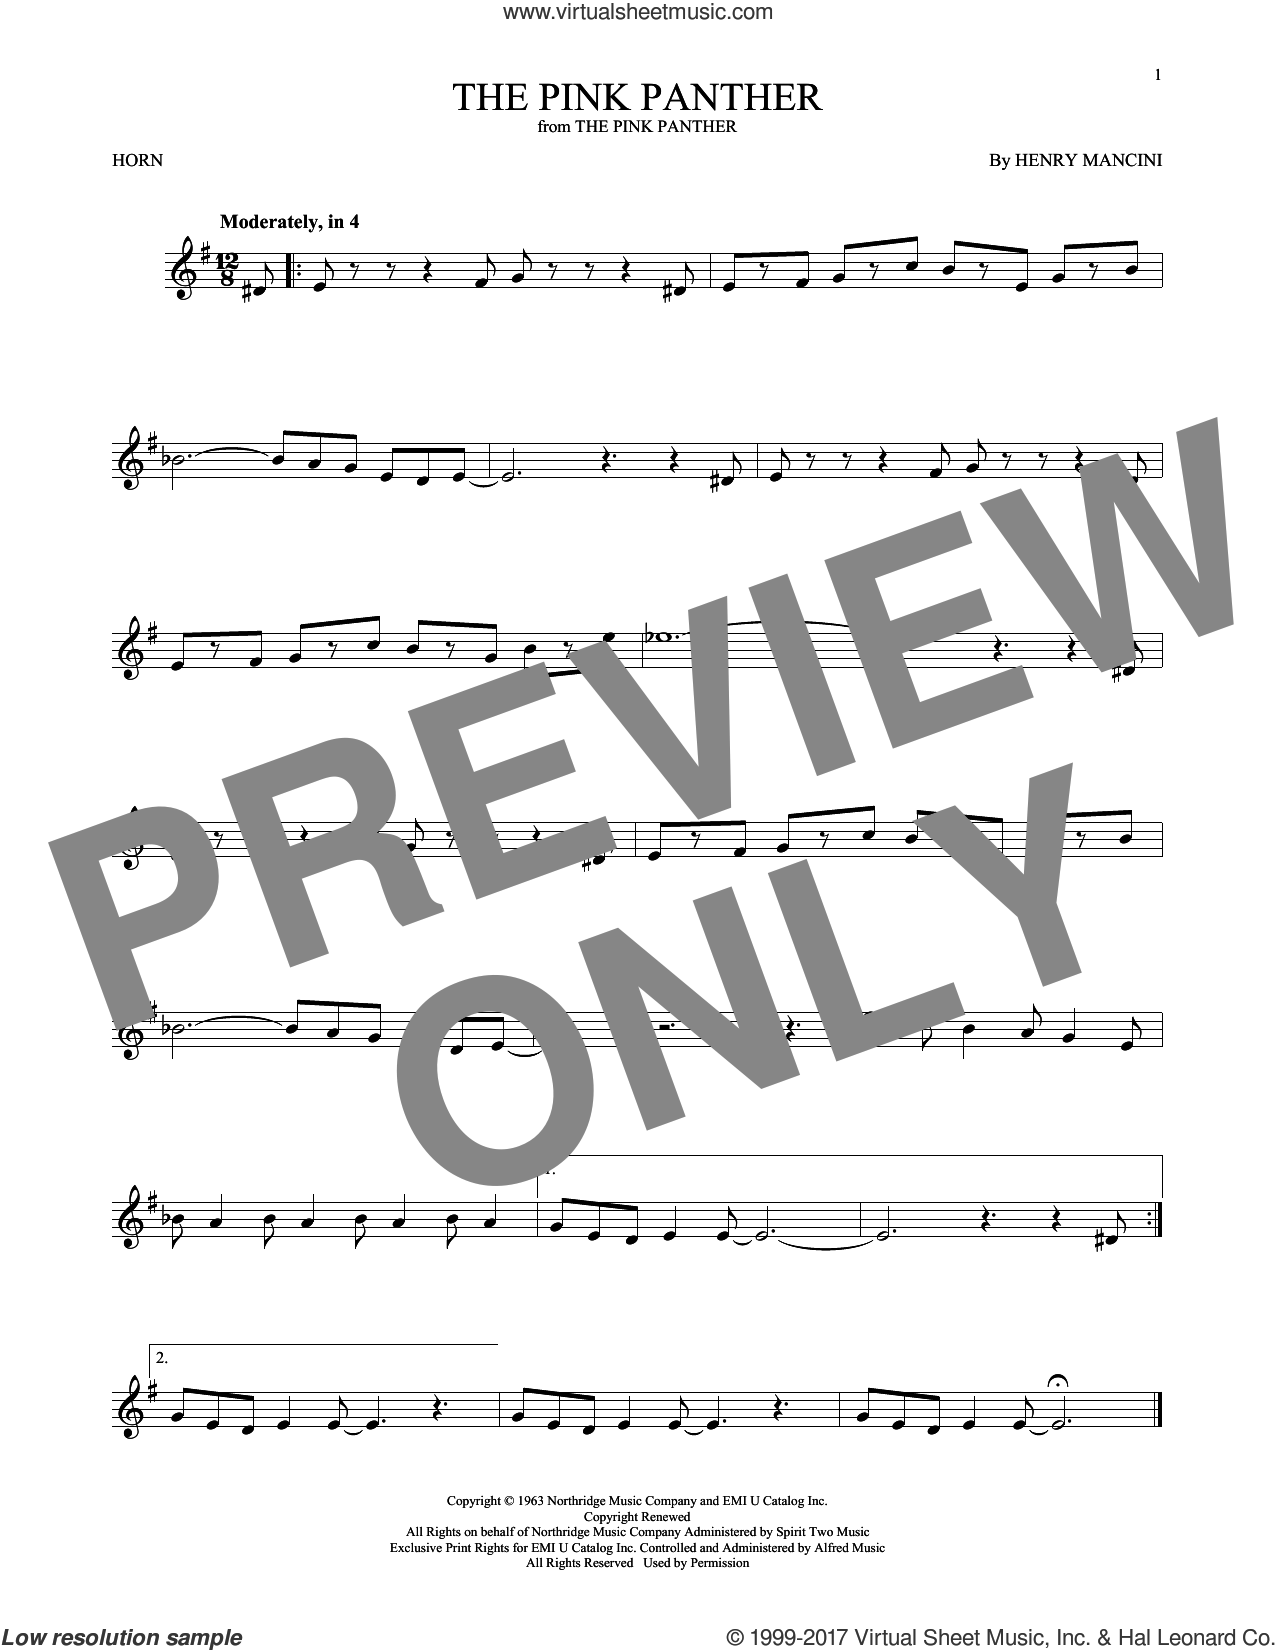 The Pink Panther sheet music for horn solo by Henry Mancini, intermediate skill level